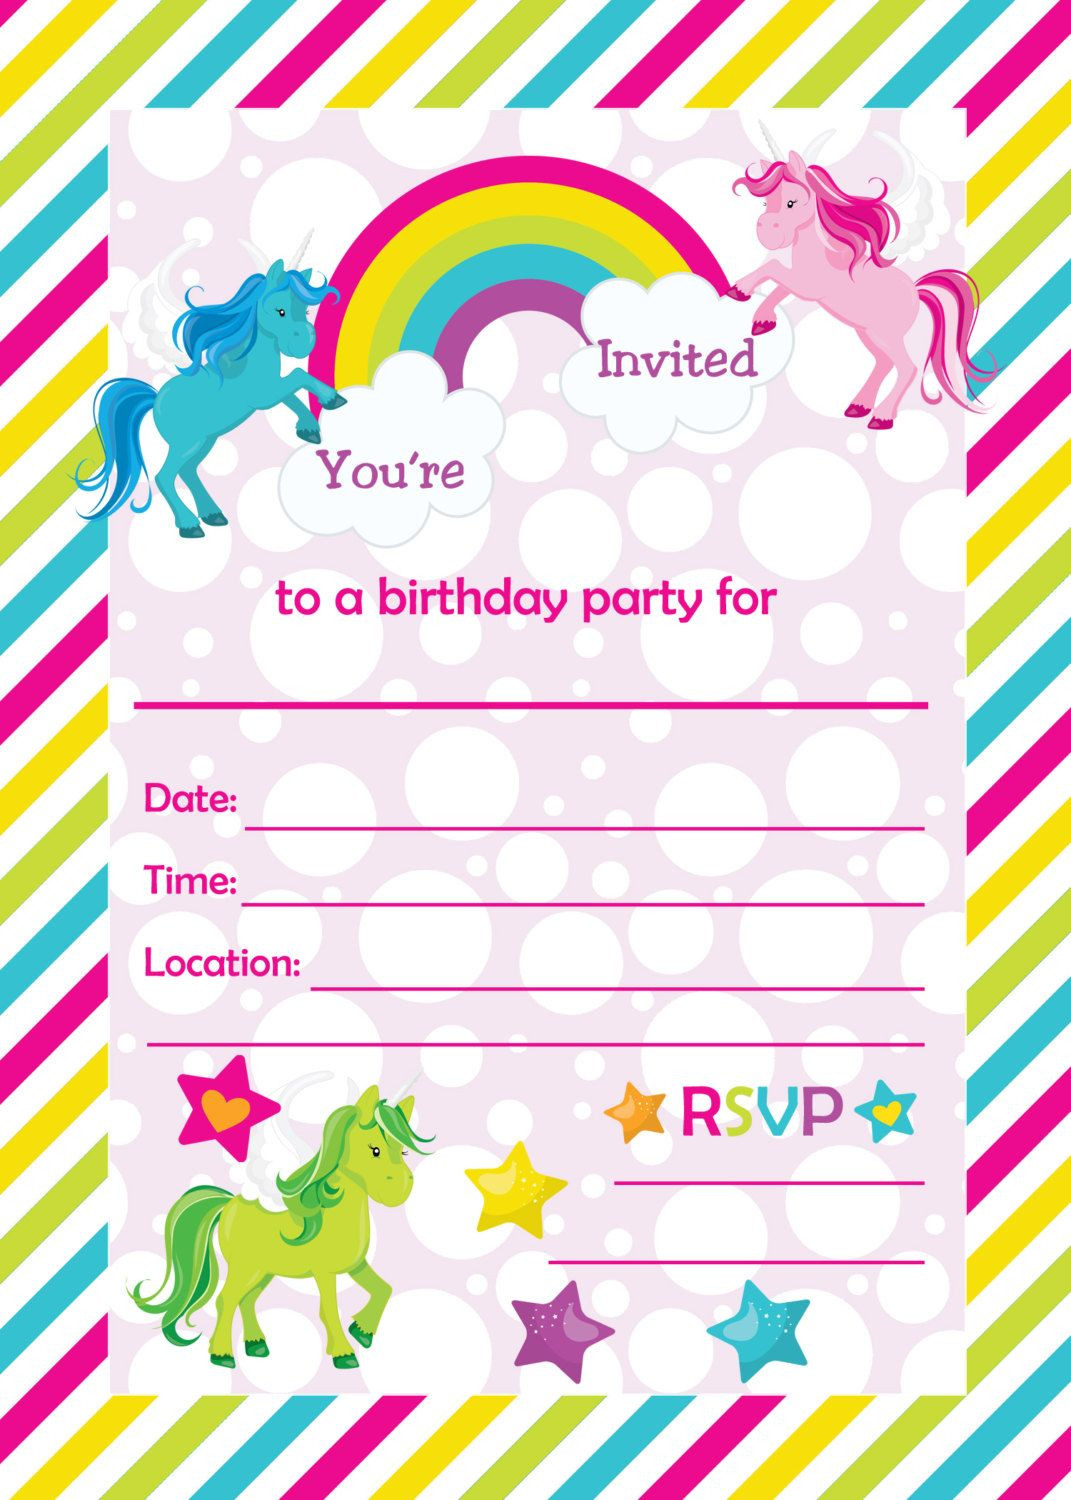 Best ideas about Birthday Party Templates . Save or Pin Fill In Birthday Party Invitations Printable Rainbows and Now.